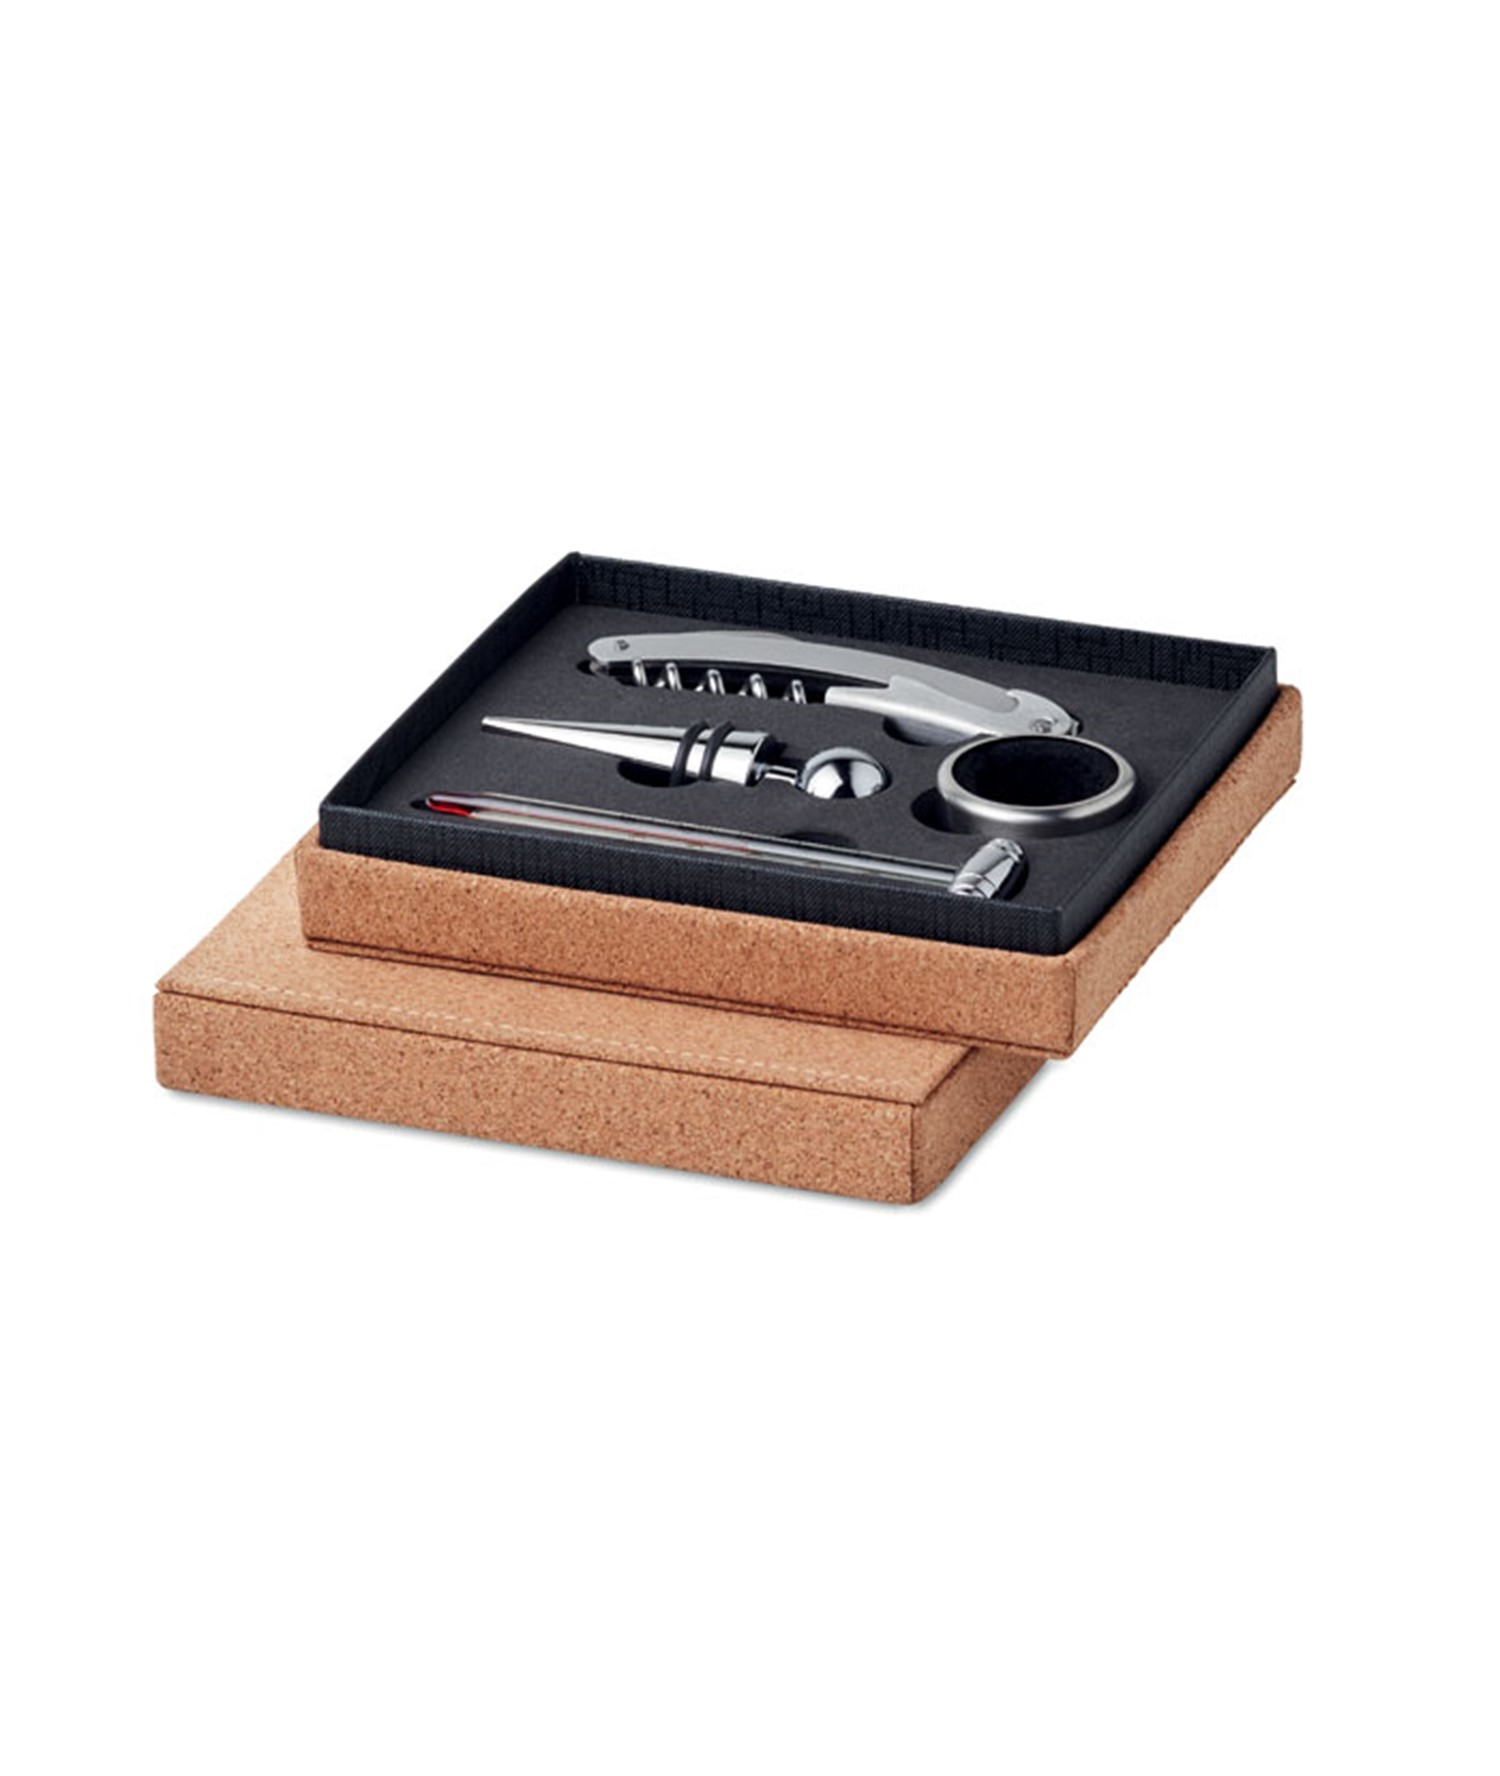 GISBORNE - WINE SET 4 PCS CORK BOX